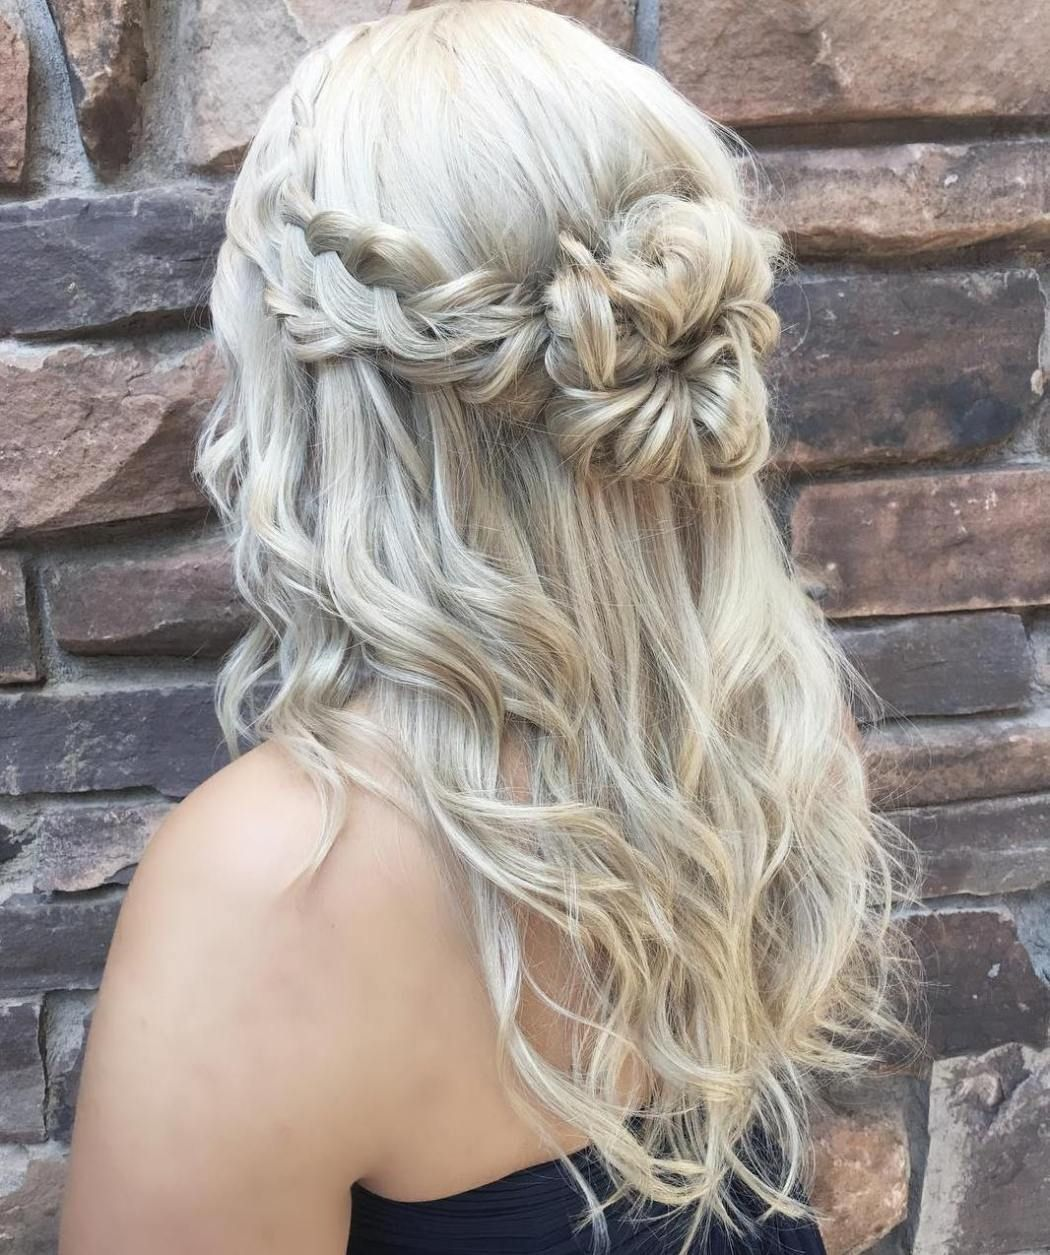 50 Half Updos For Your Perfect Everyday And Party Looks Braided Half Updo Hair Designs For Girls Hair Styles